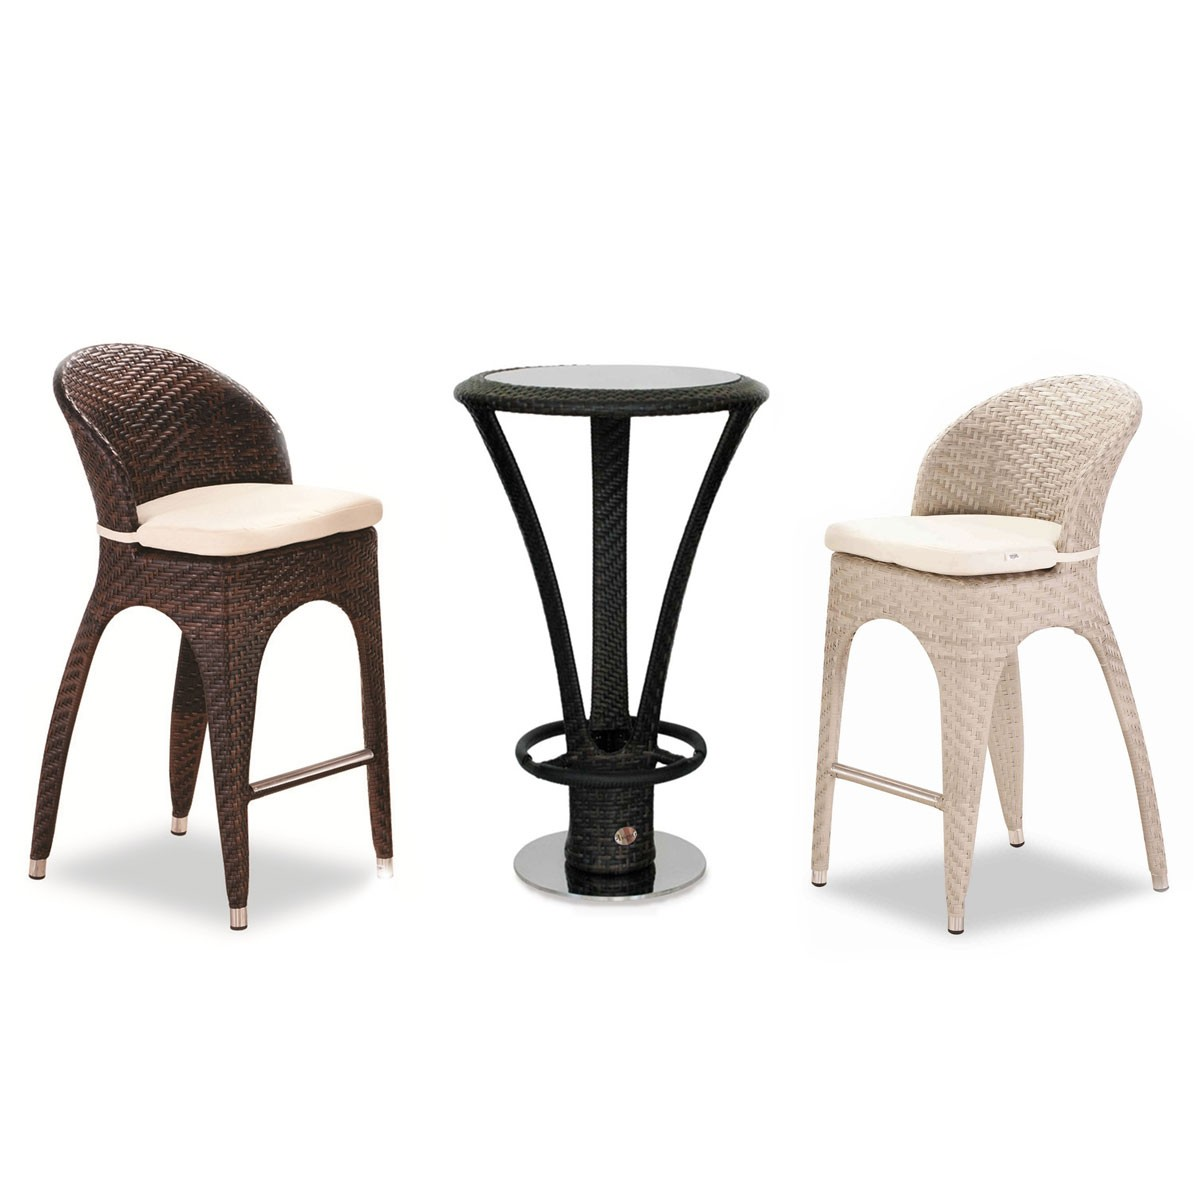 PE Rattan 3 Pieces Dining Set: 1 * Dining Table, 2 * Chair (LLS-FSAL26)